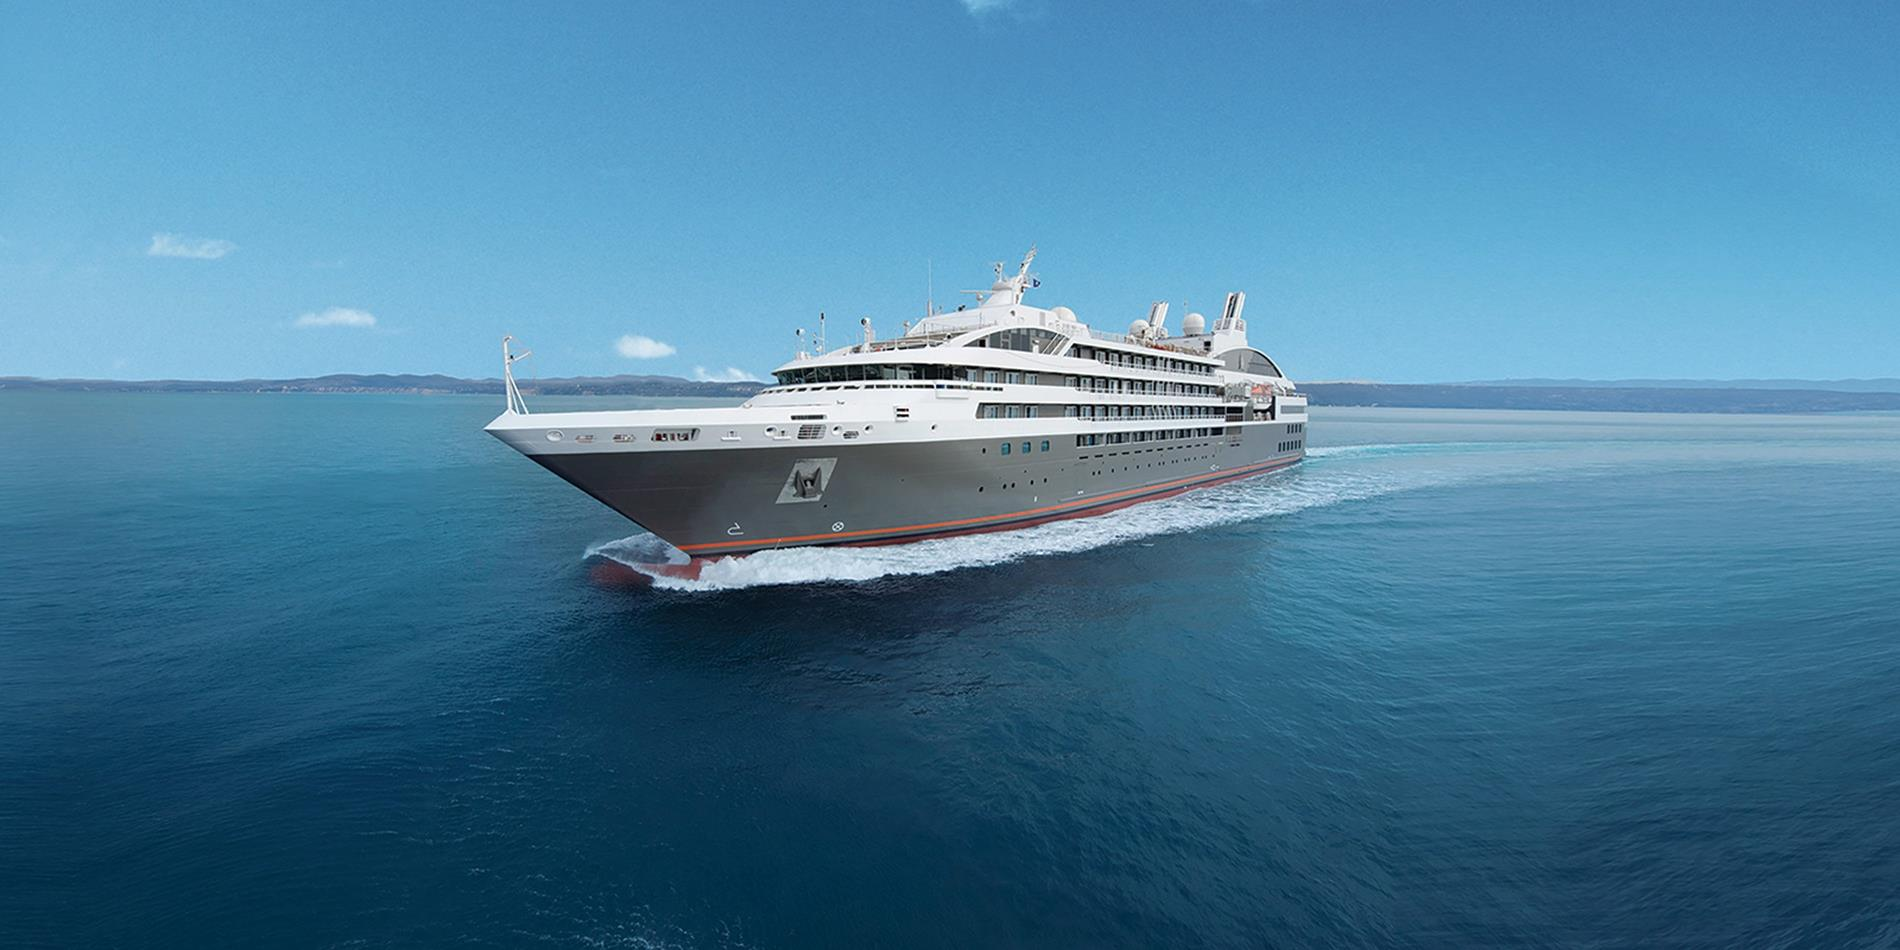 Cruise From Scotland to Spitsbergen with National Geographic